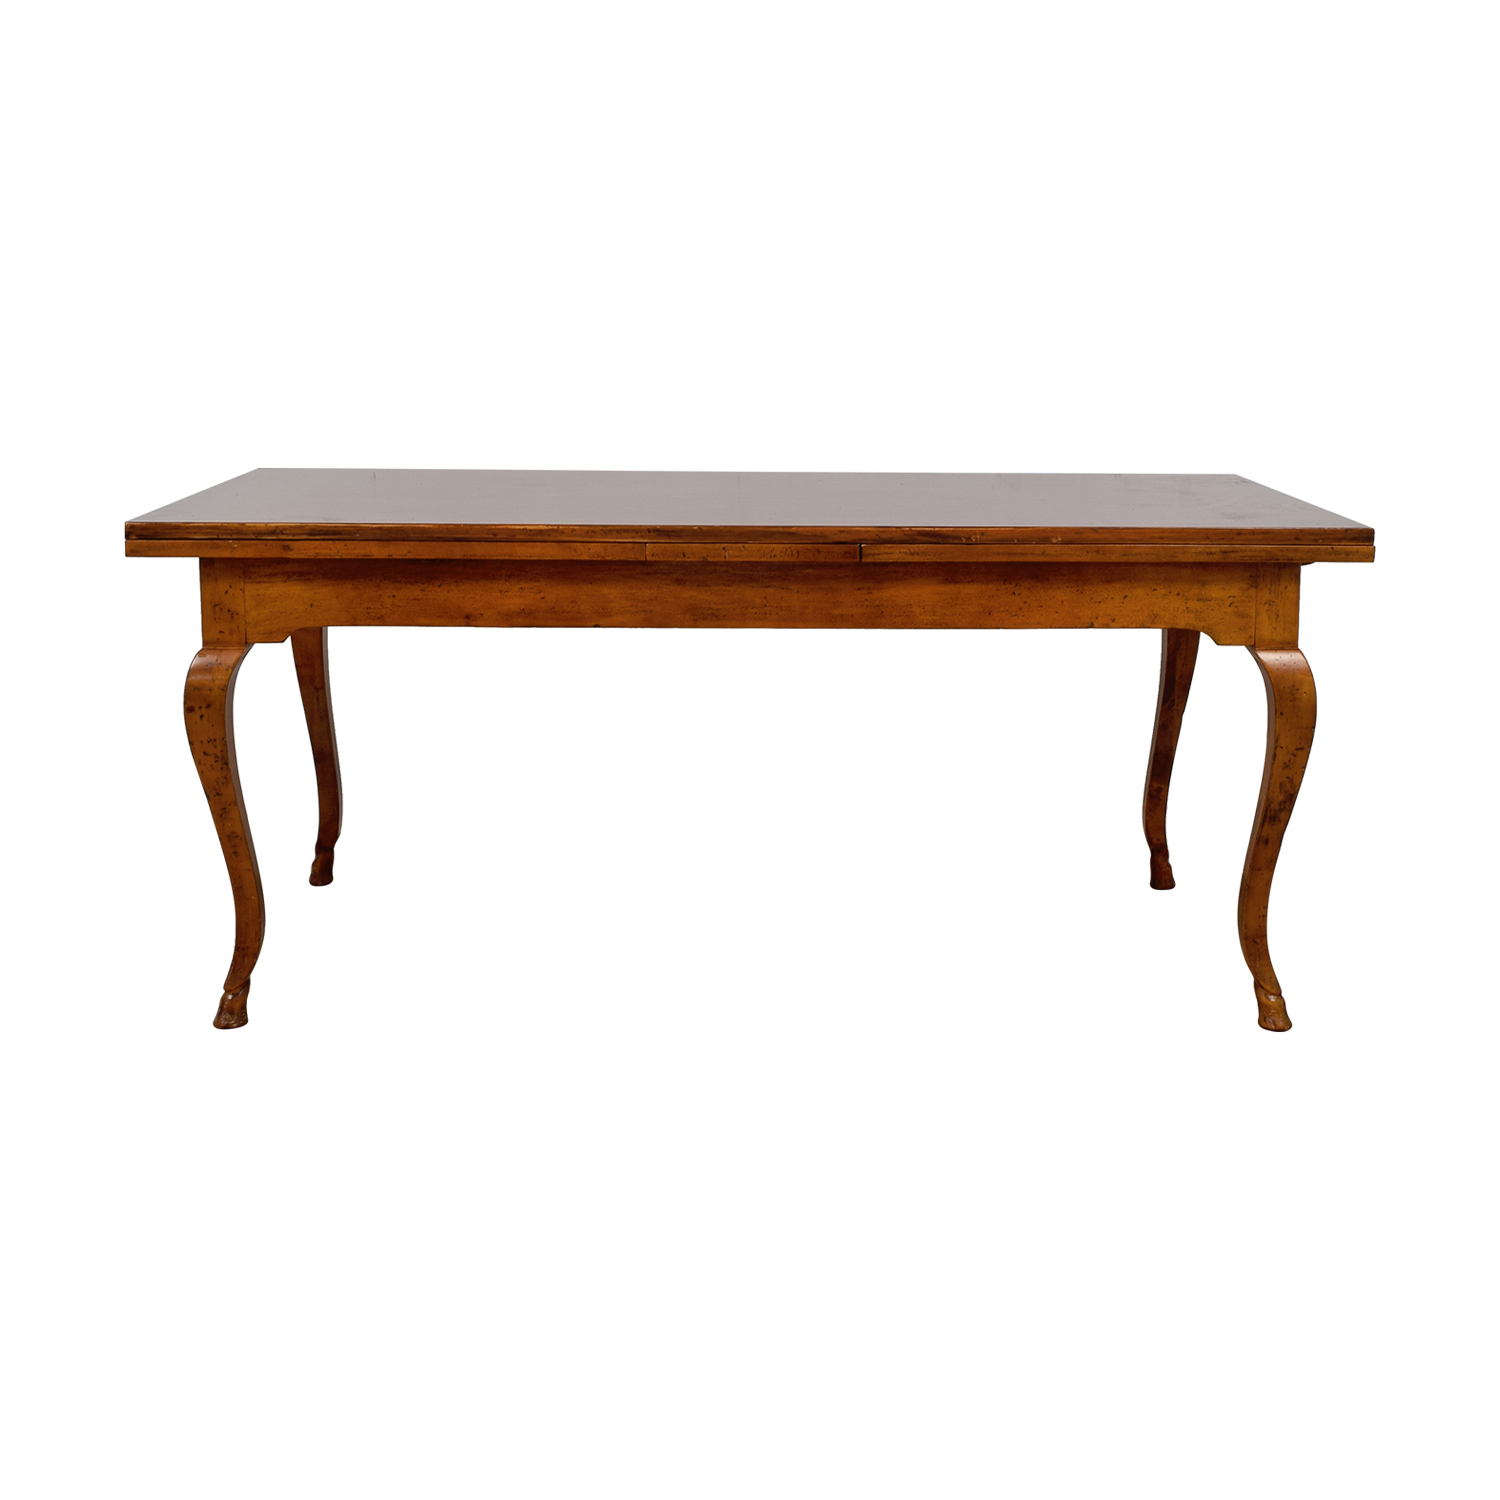 Bloomingdale's Bloomingdale's Wood Dining Table price